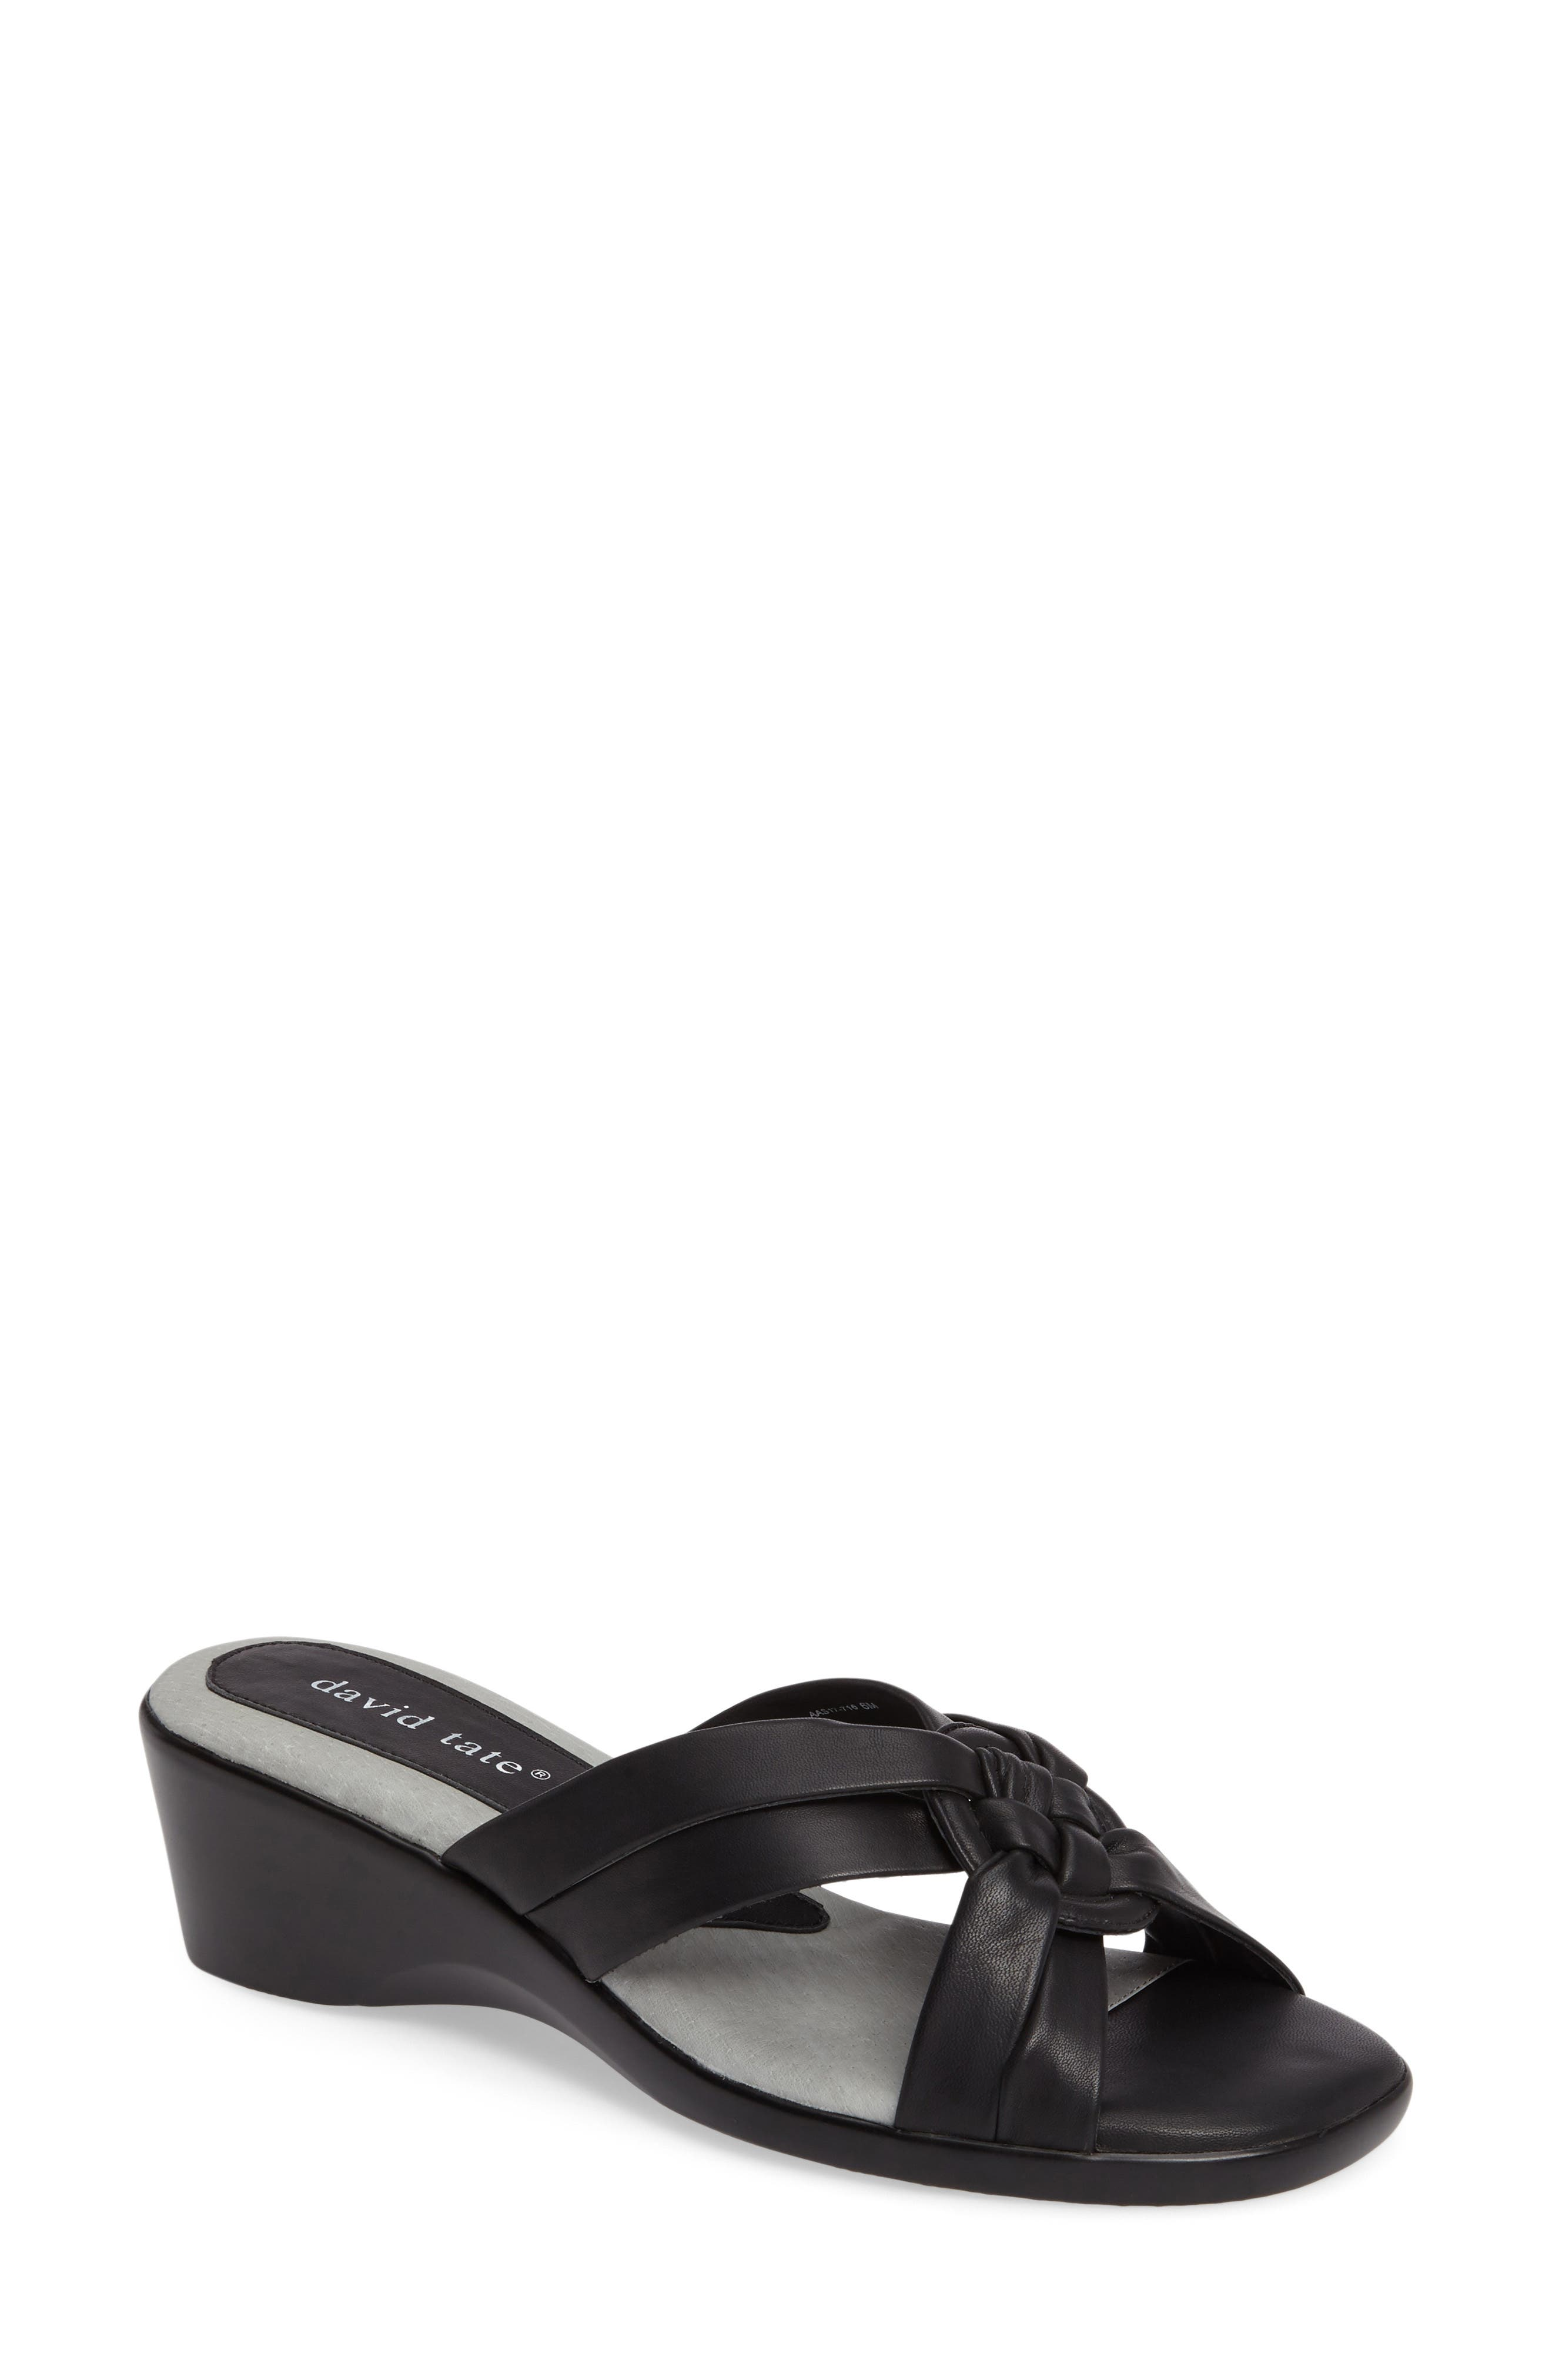 David Tate Verona Sandal (Women)